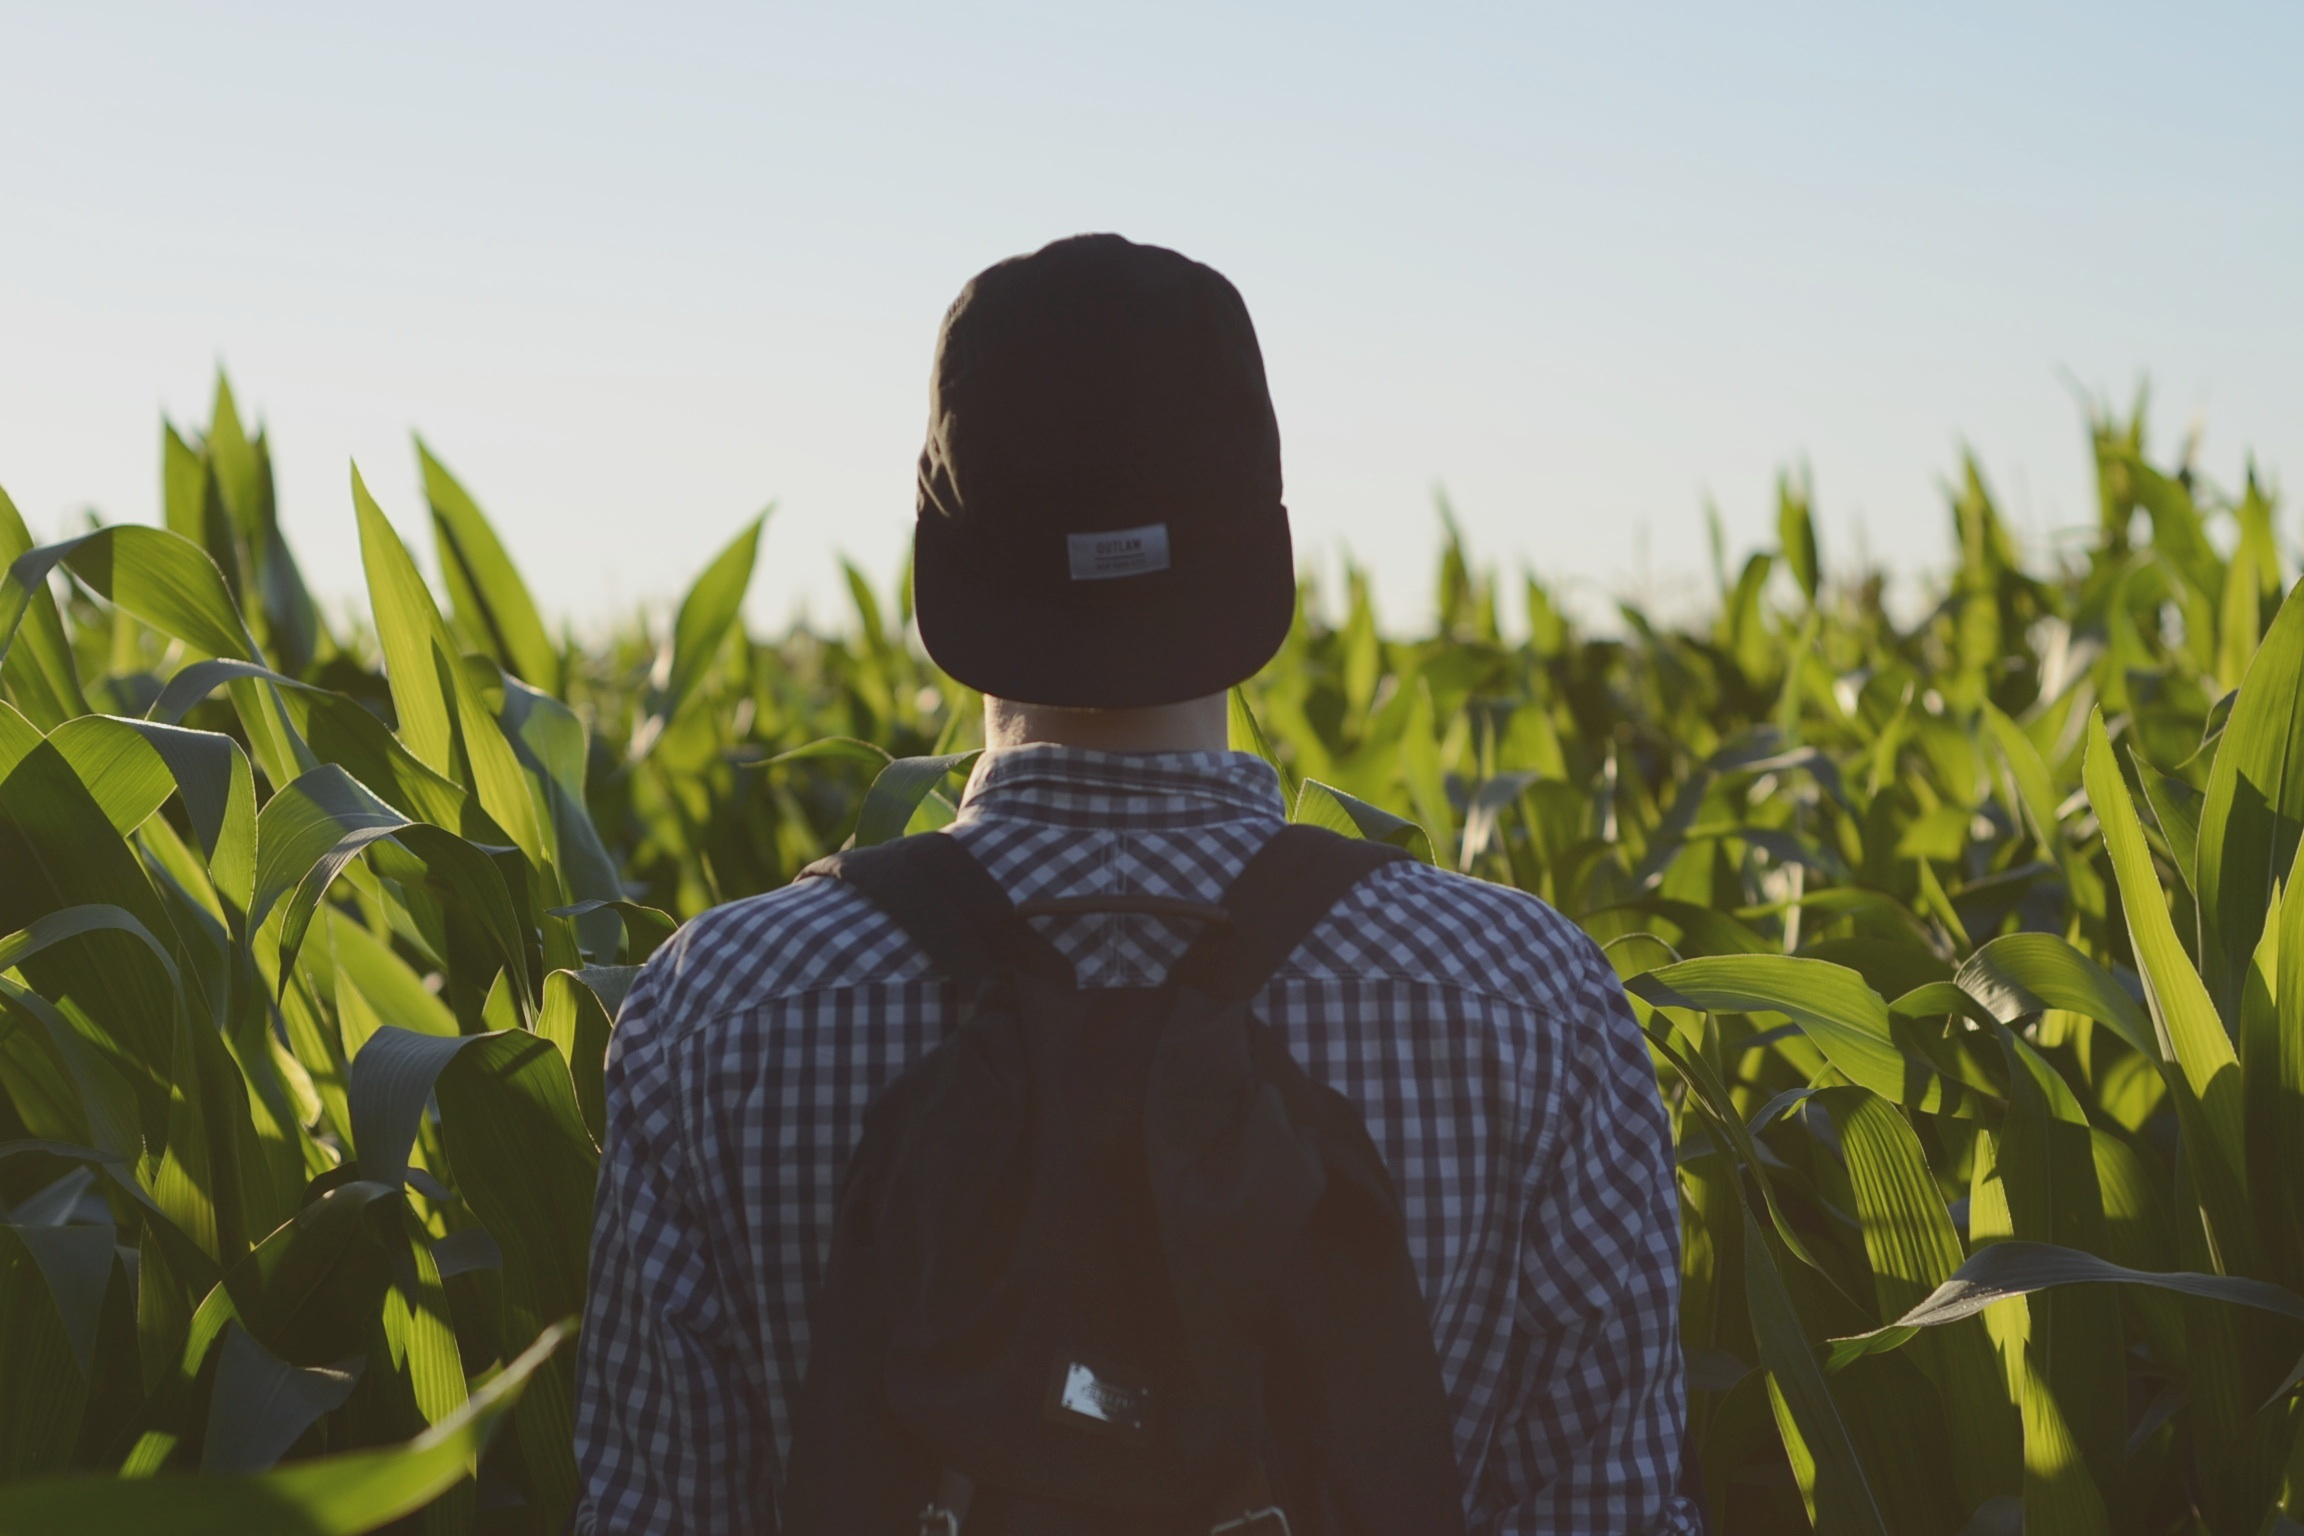 boss-fight-free-high-quality-stock-images-photos-photography-man-hat-corn-fields